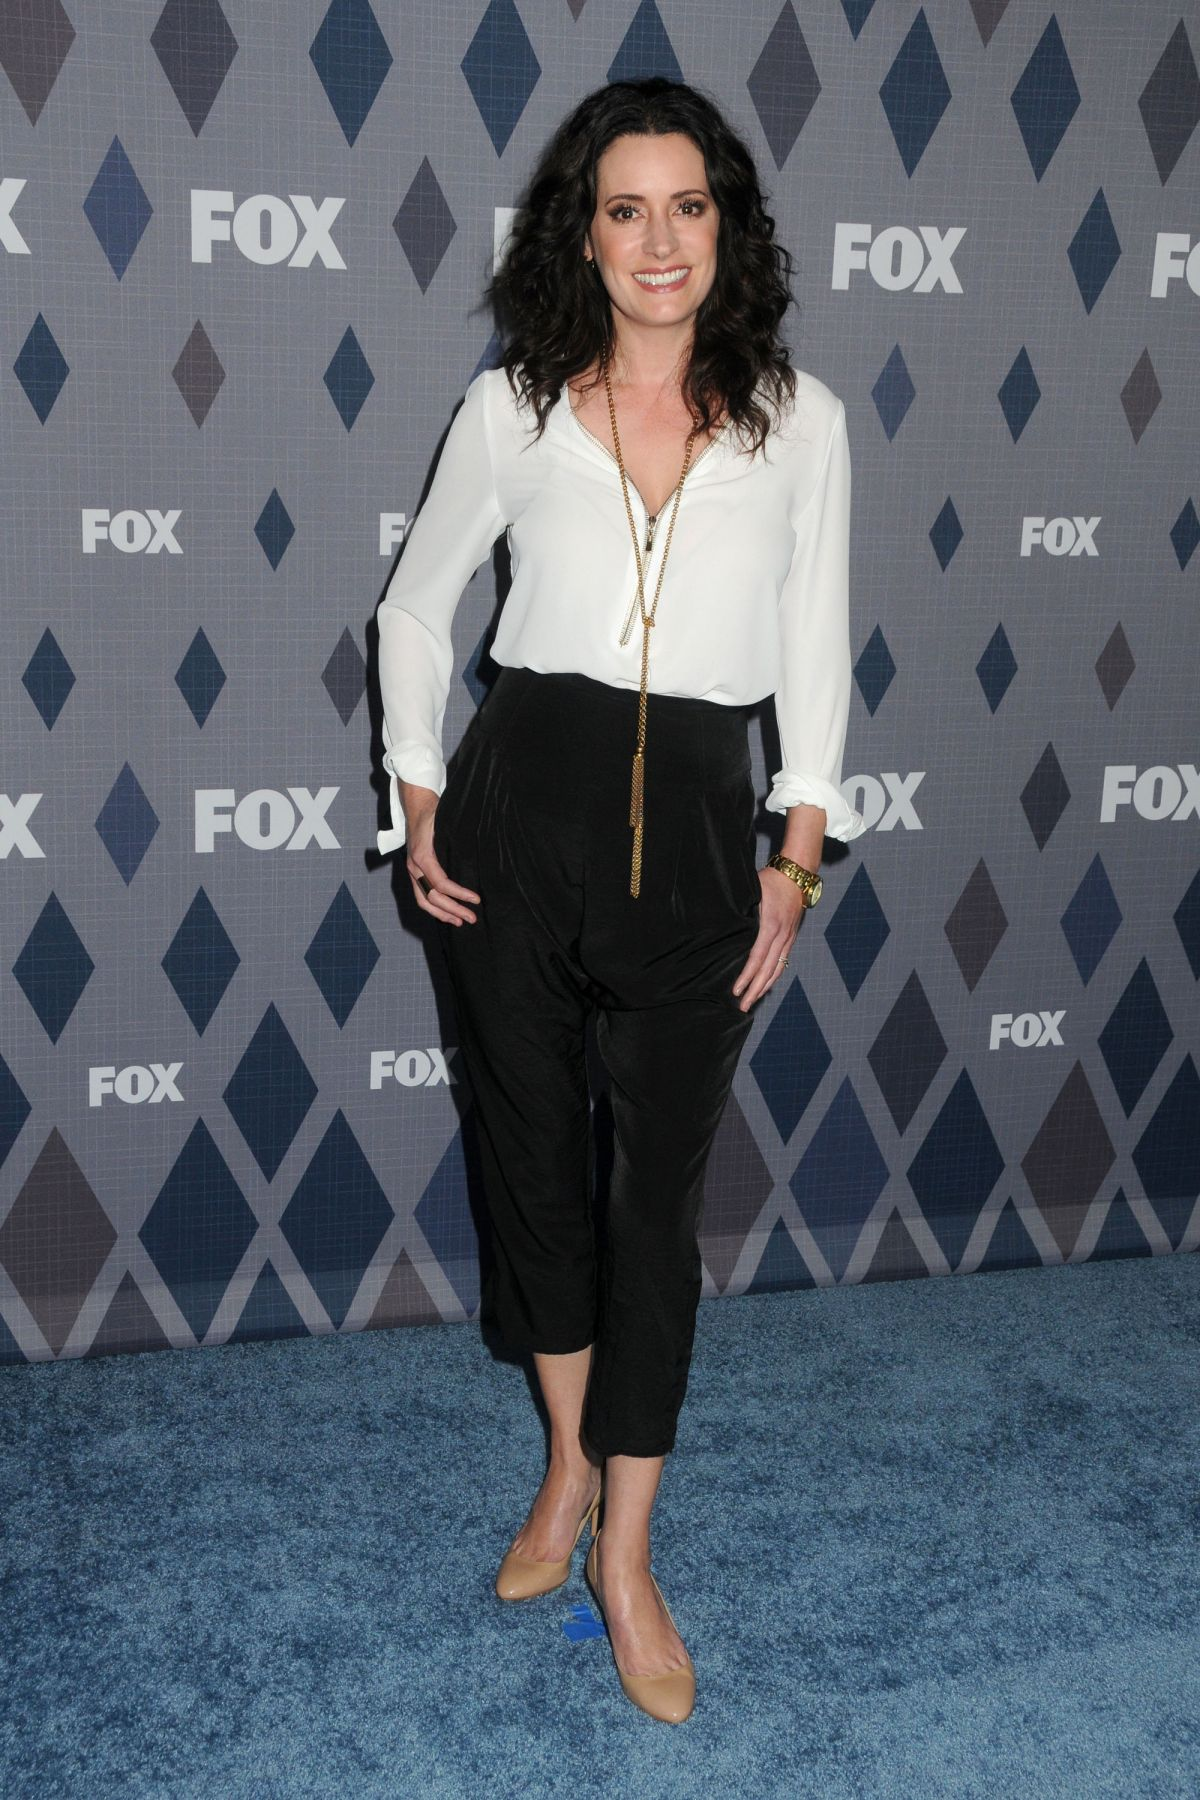 PAGET BREWSTER at Fox Winter TCA 2016 All-star Party in Pasadena 01/15/2016